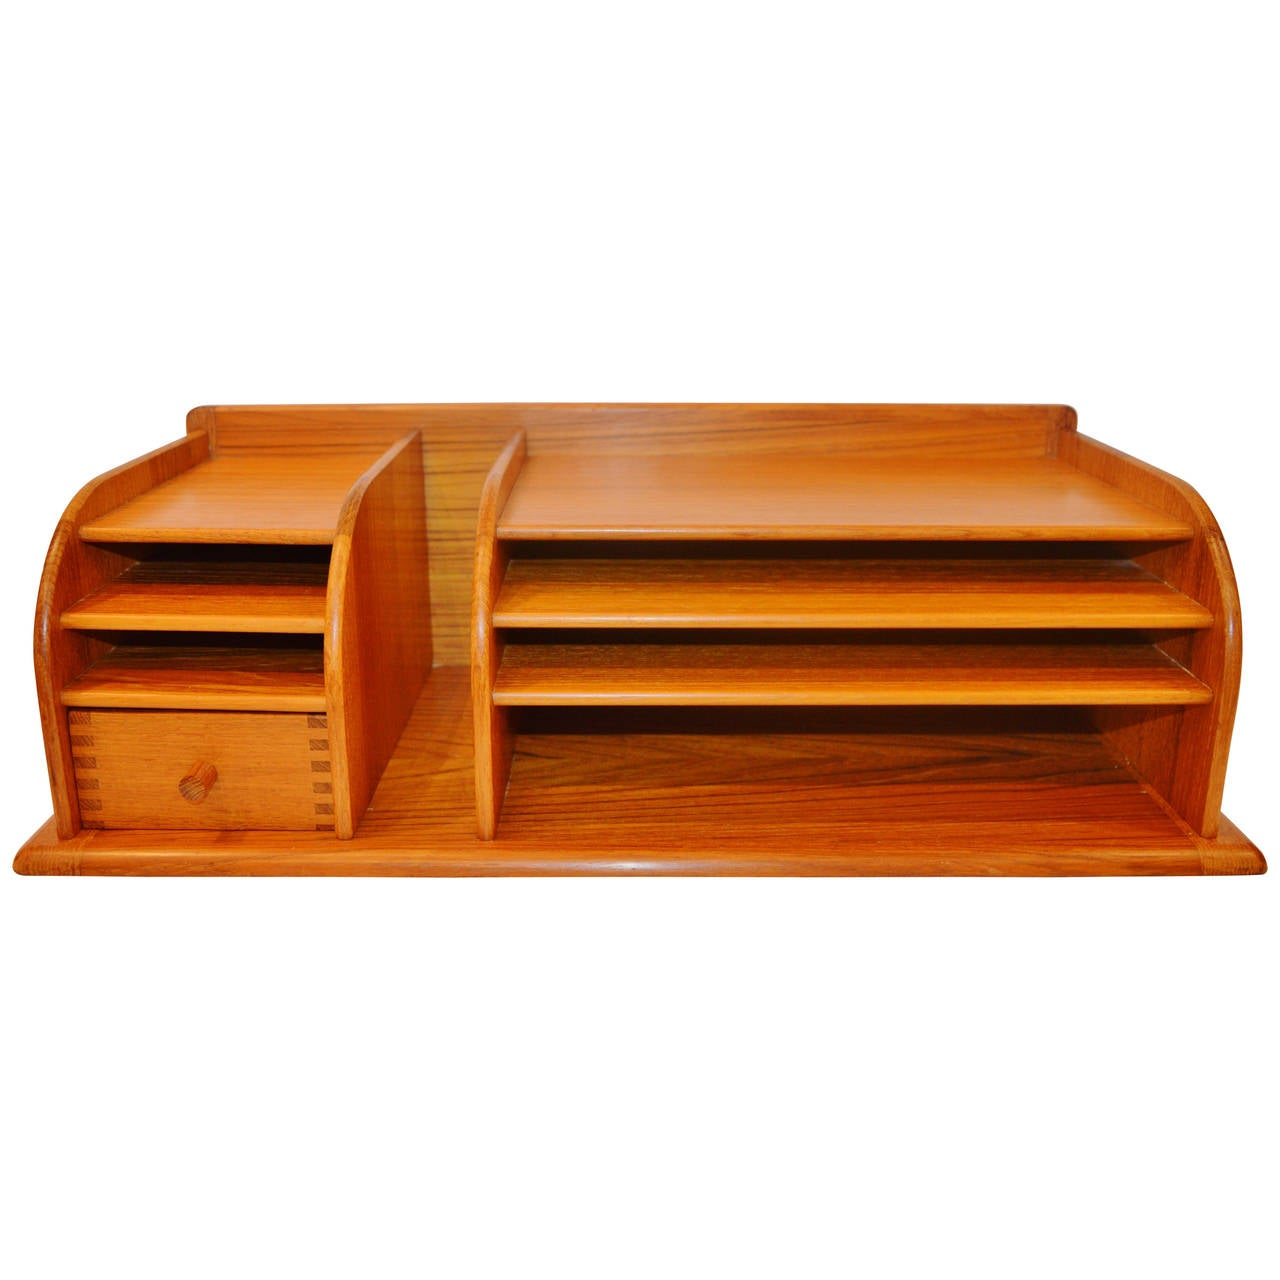 Danish modern solid teak desk organizer by kai kristiansen - Designer desk accessories and organizers ...